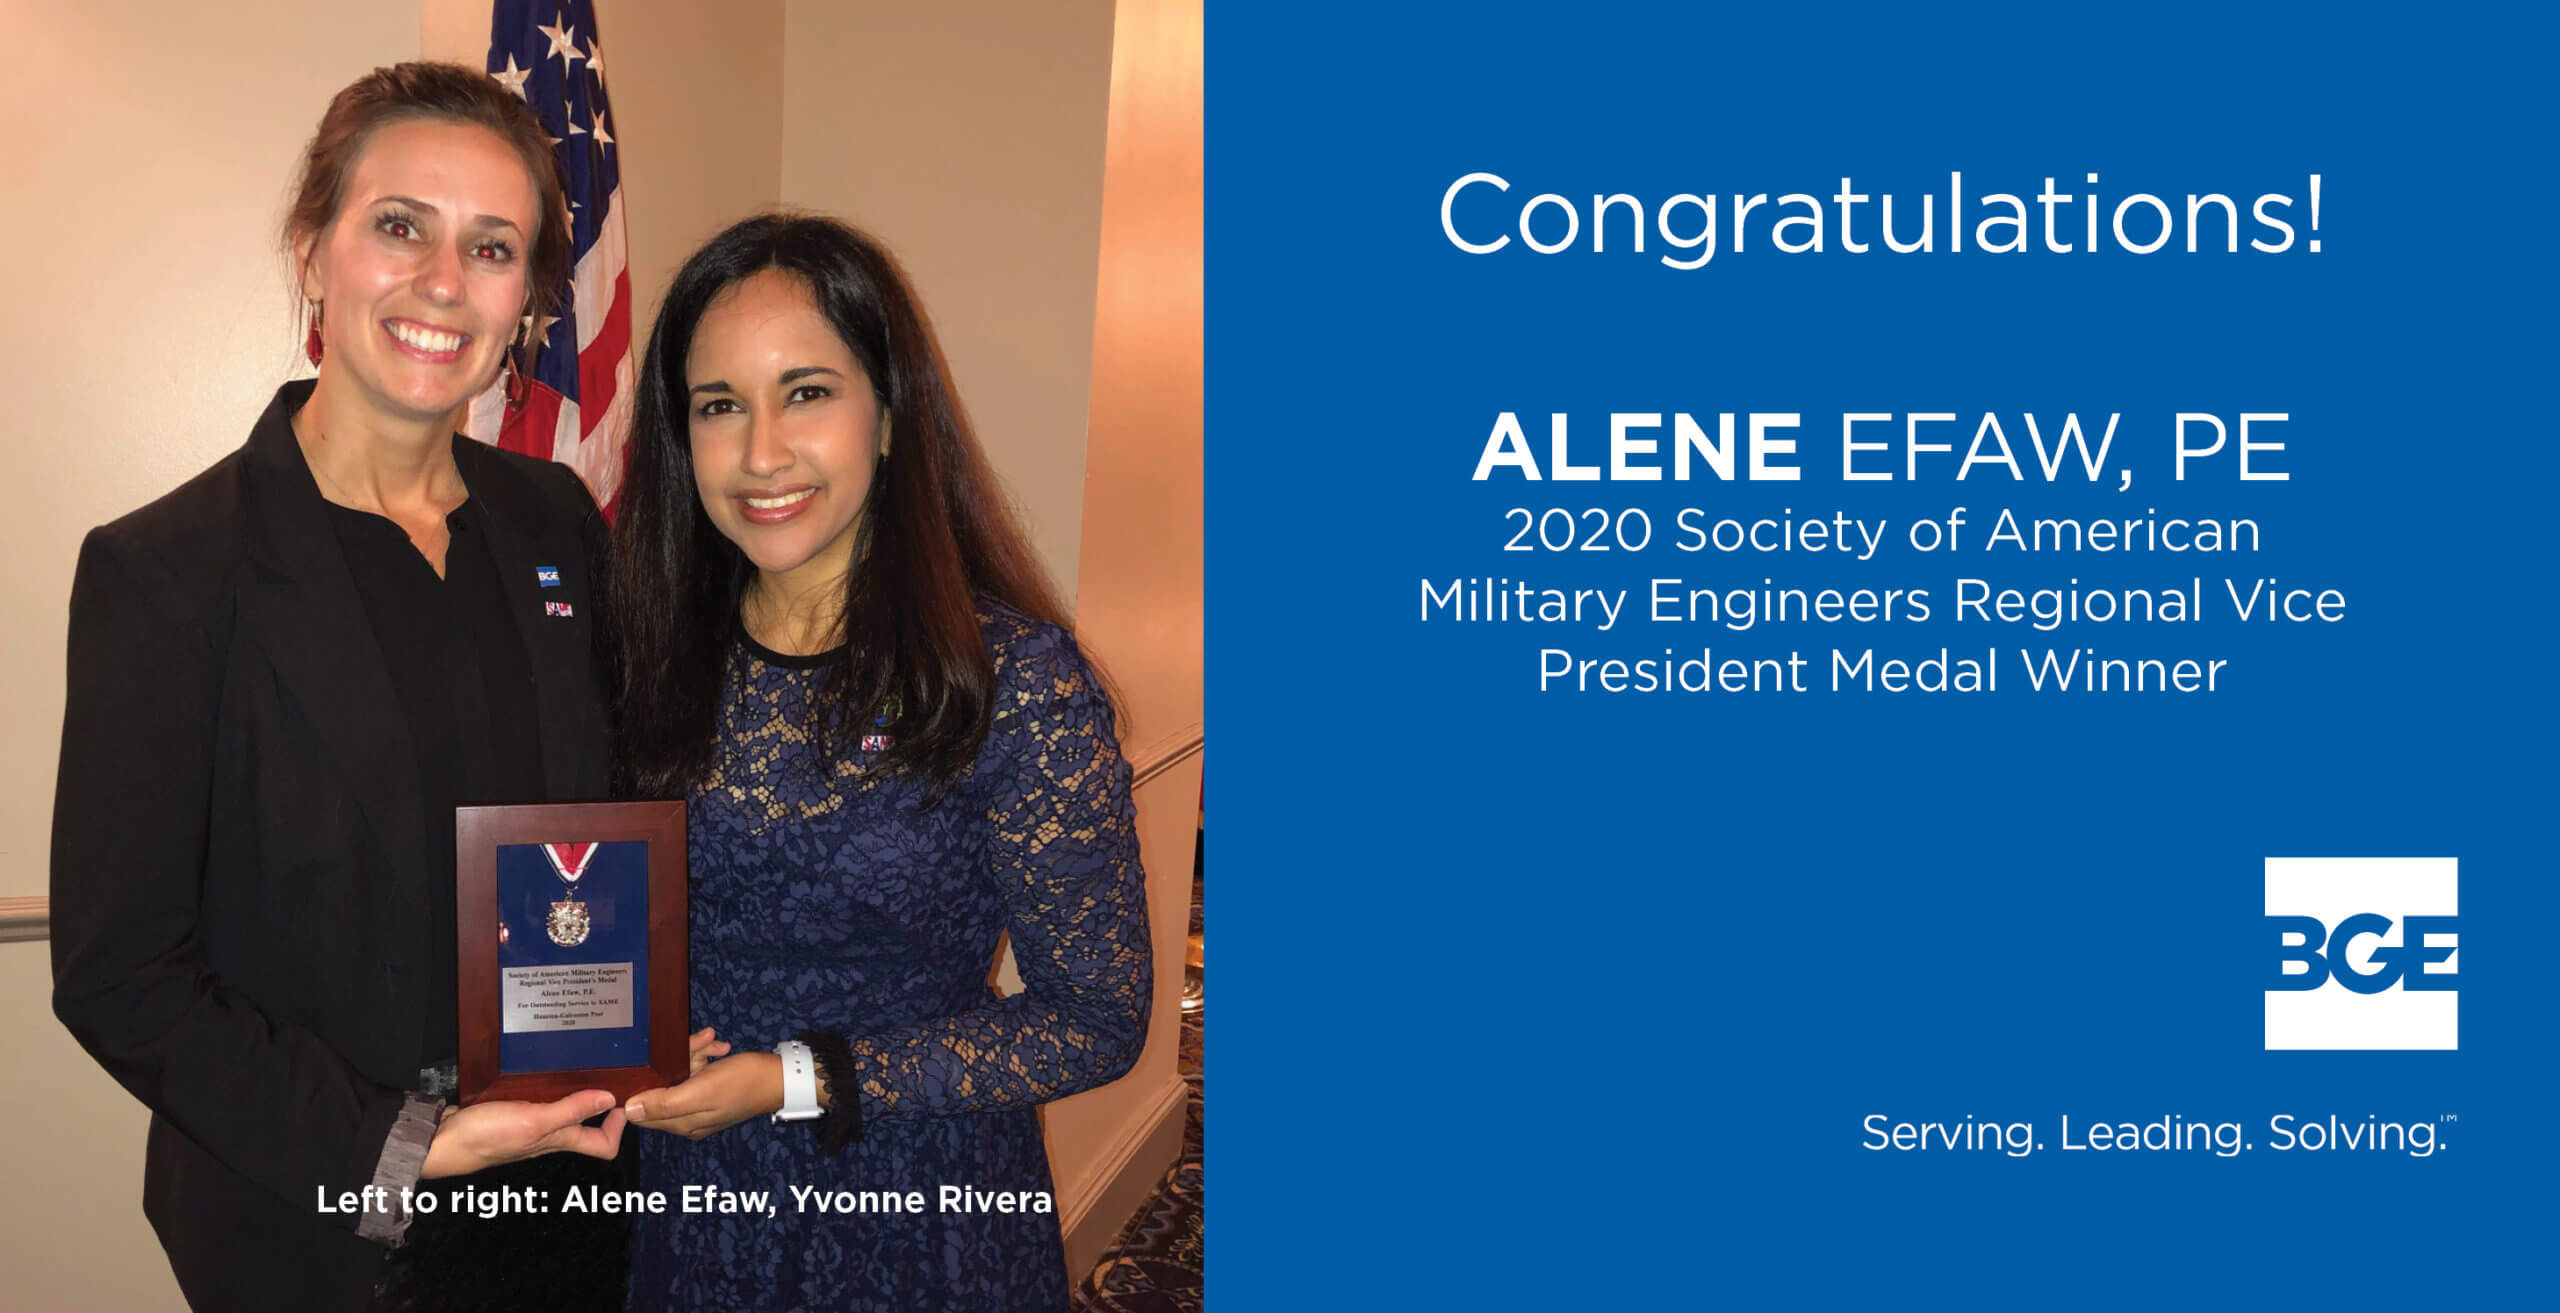 BGE Engineer Earns RVP Medal from the Society of American Military Engineers